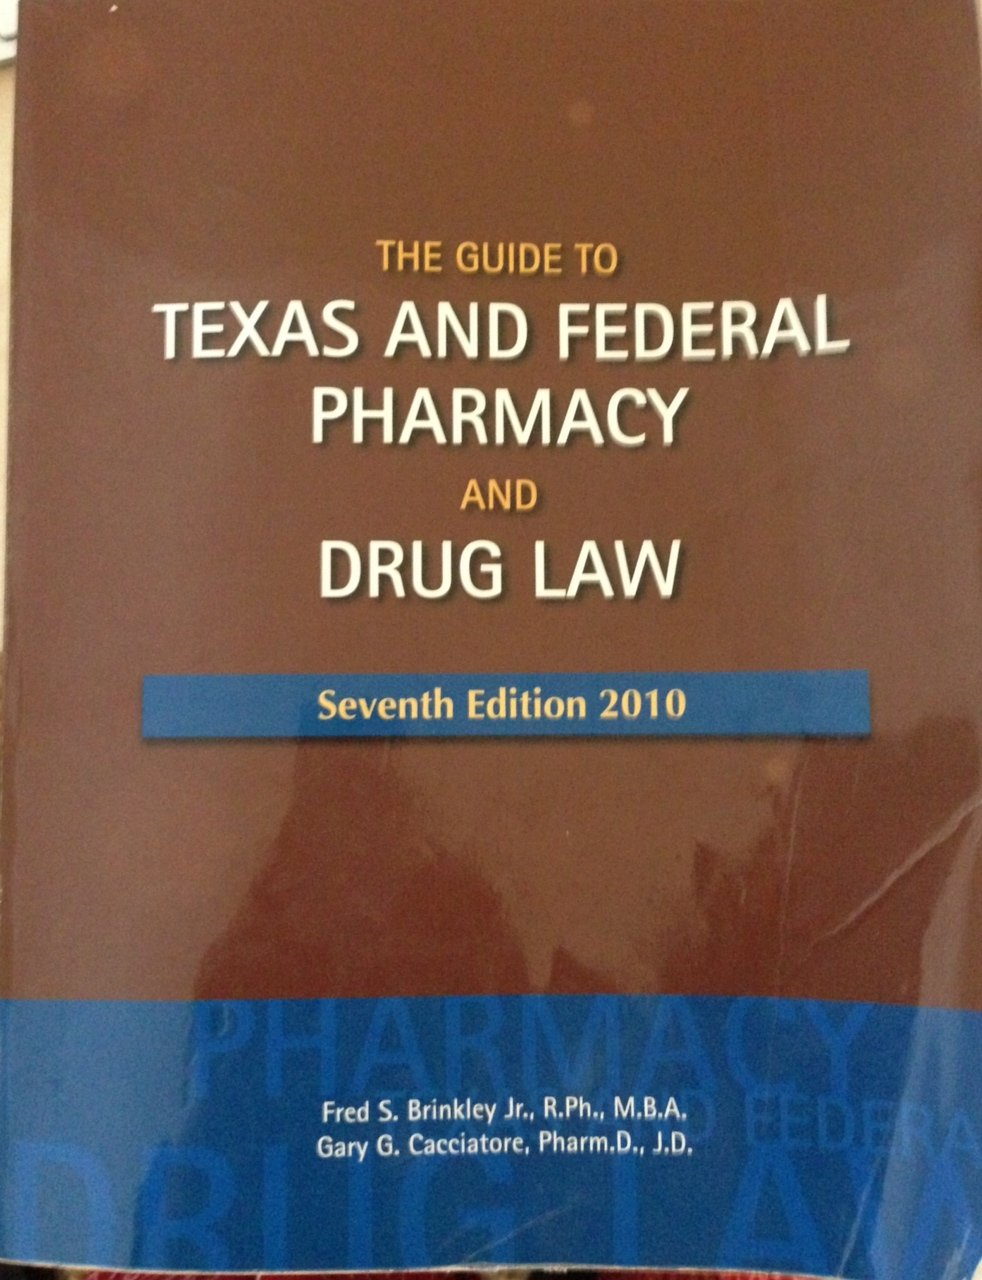 Medication discount coupons bvgg - Texas And Federal Pharmacy And Drug Law 7th Edition Gary G Cacciatore Fred S Brinkley 9780692008997 Amazon Com Books